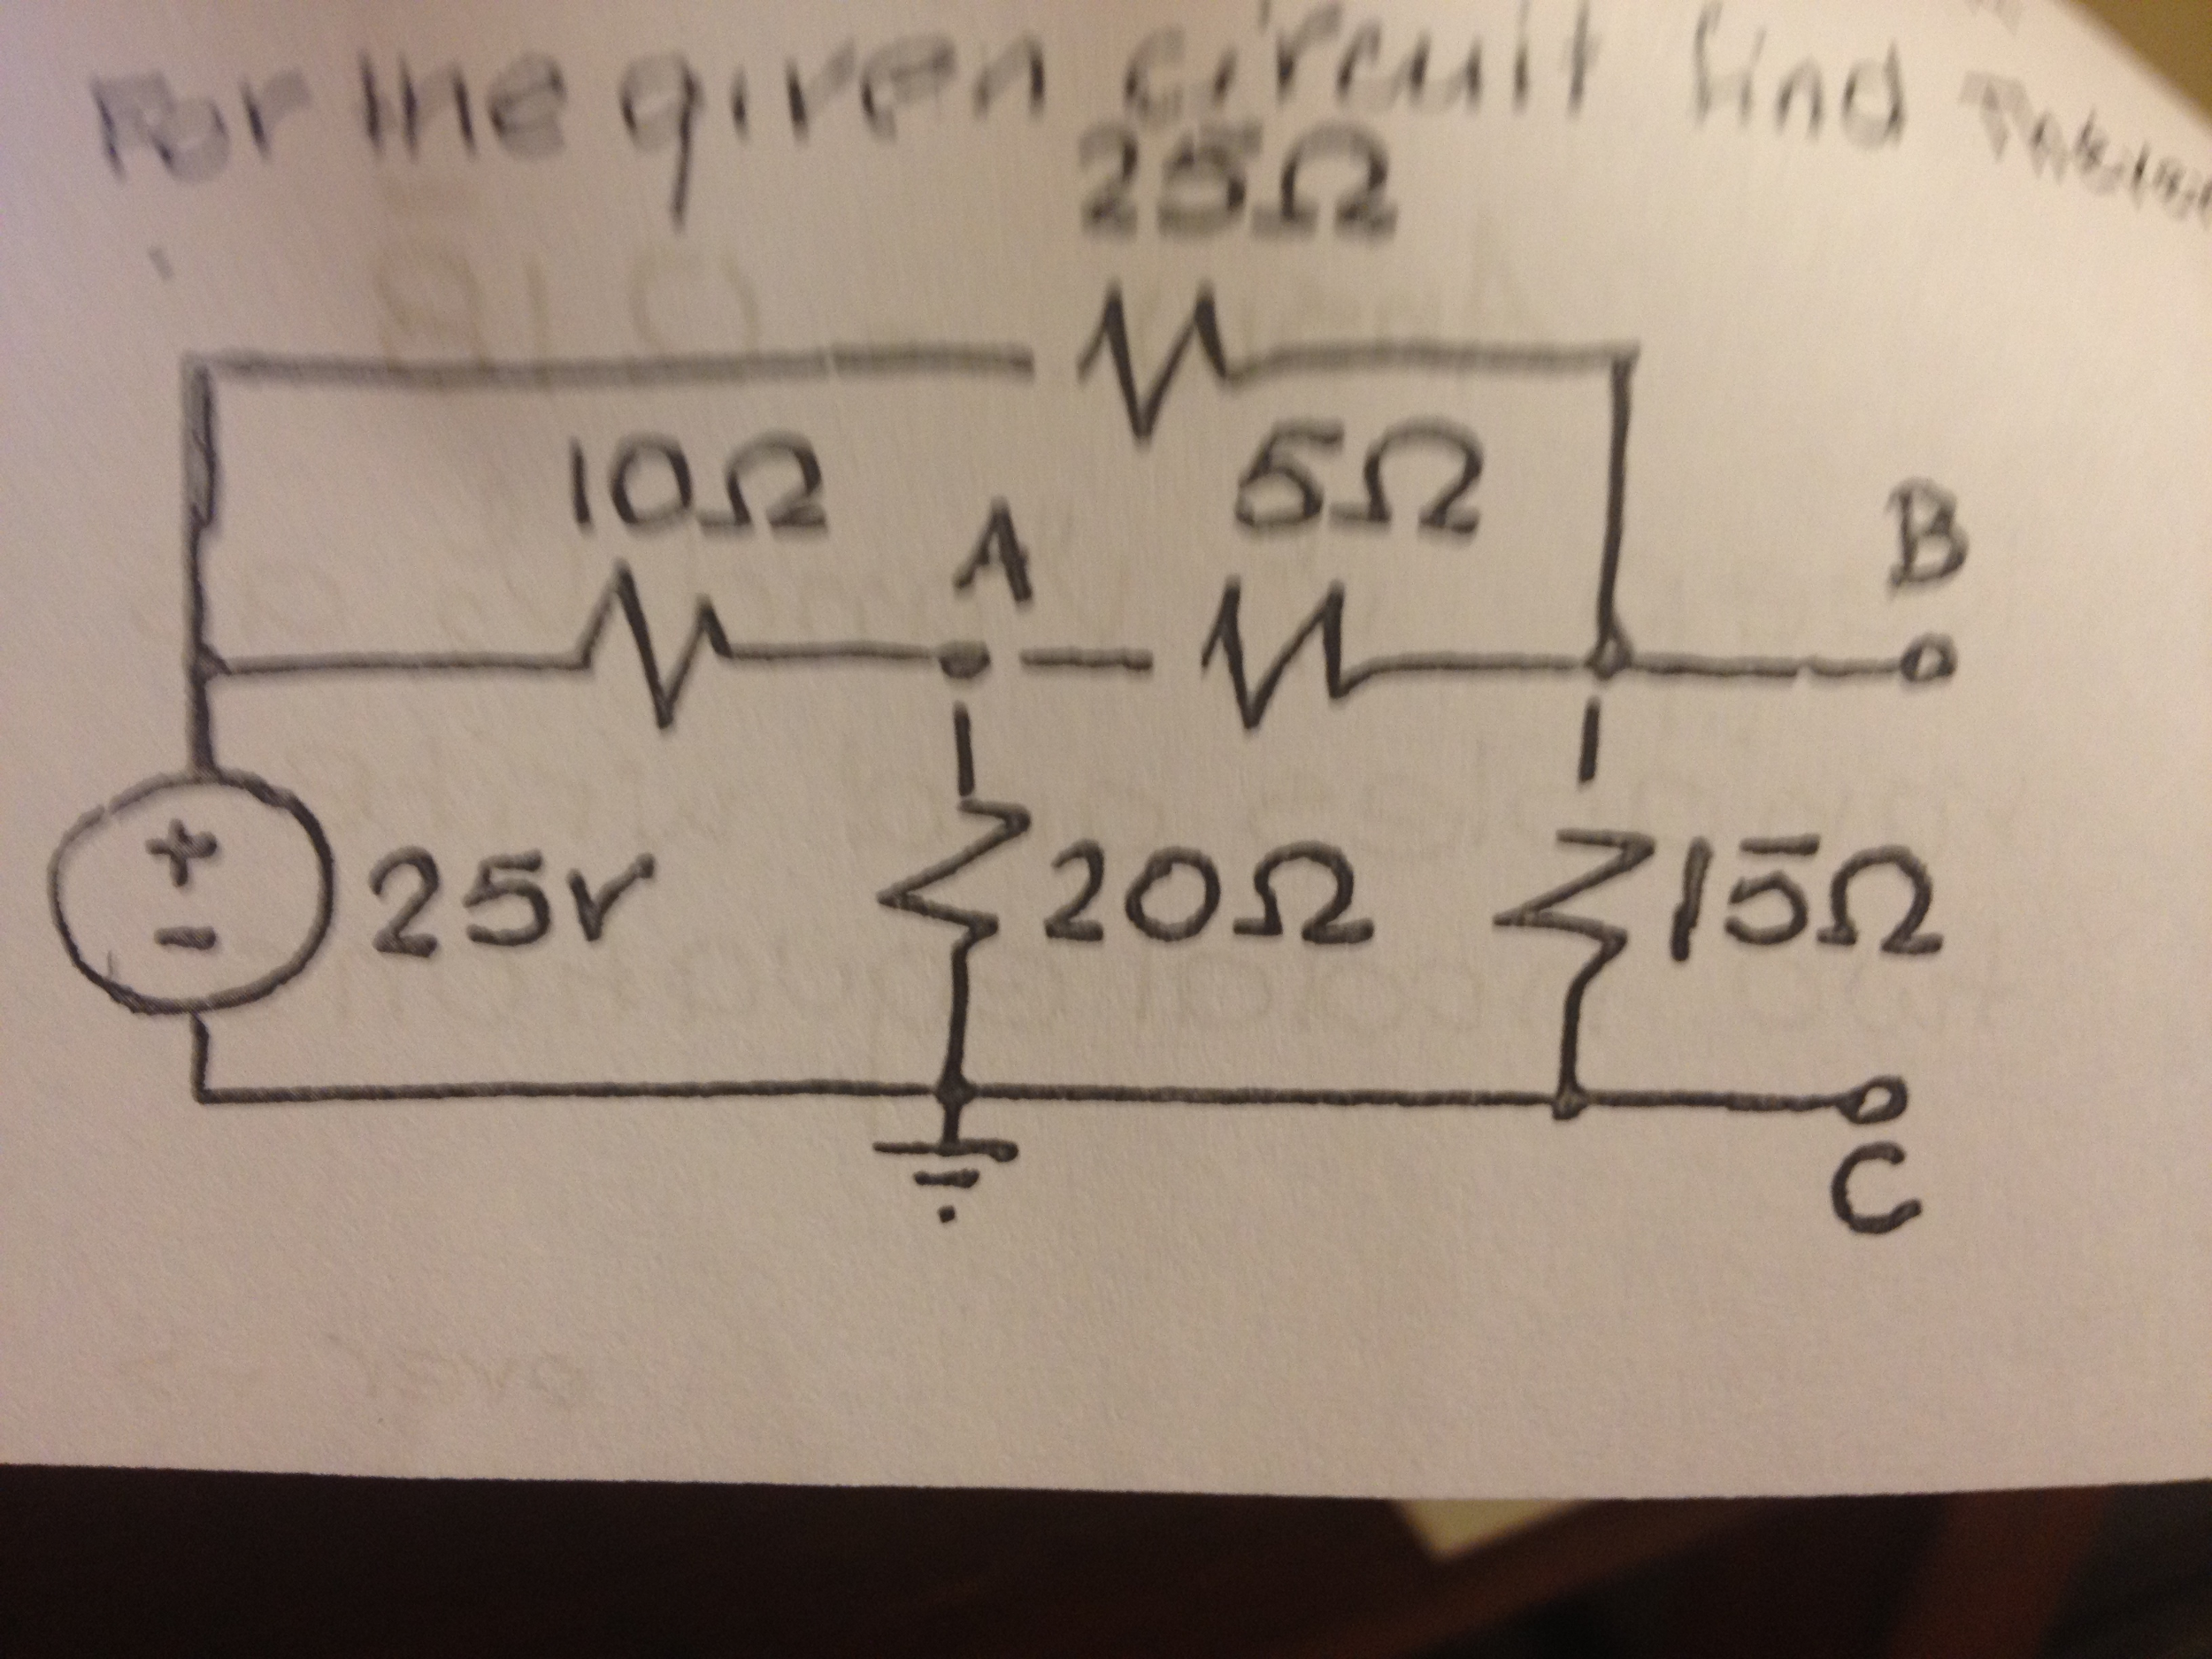 For the given circuit find Thevenin and Nortan equ